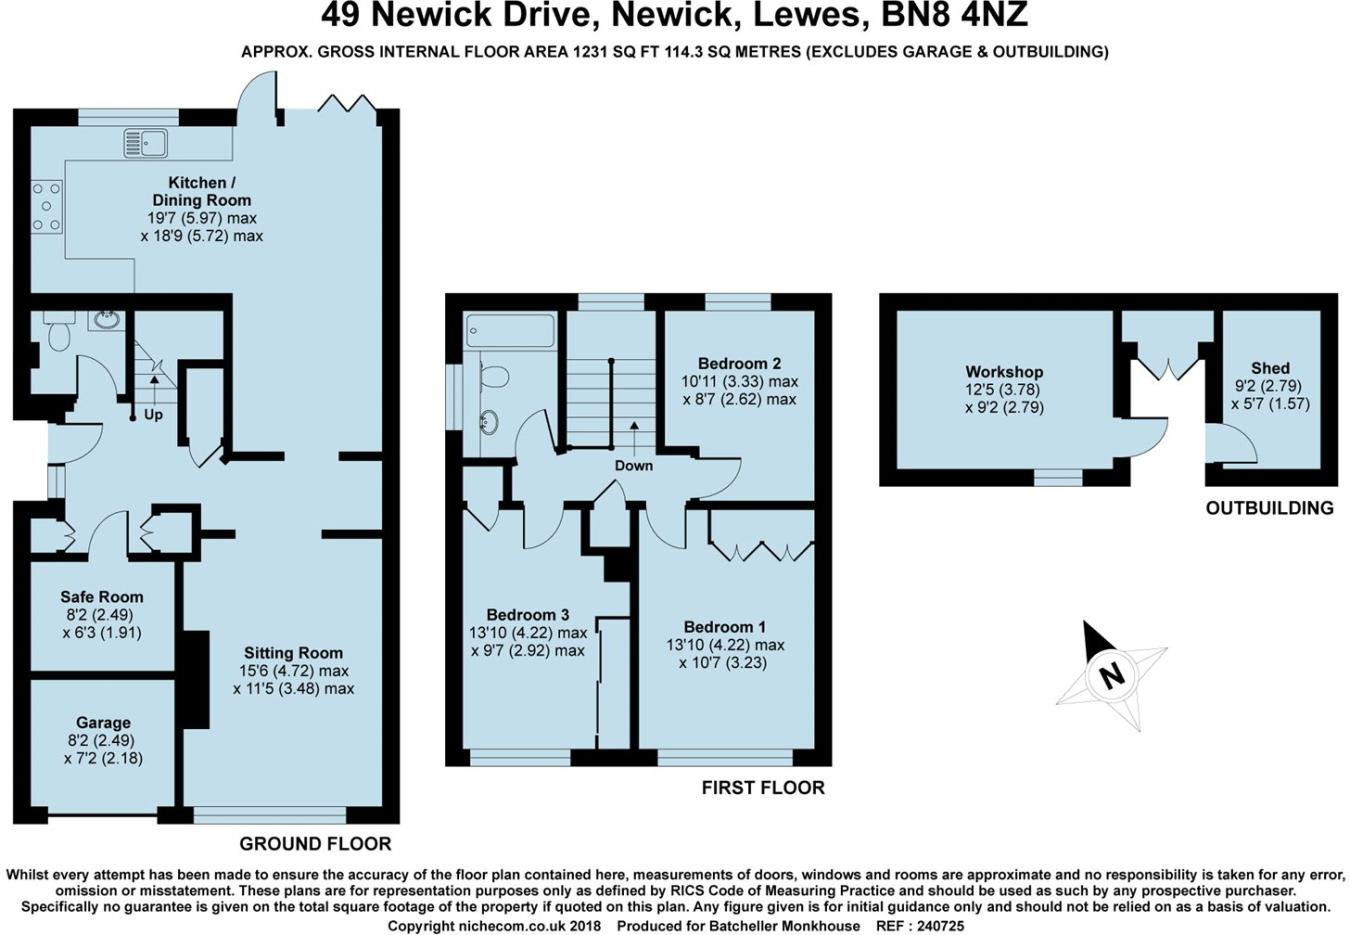 3 bedroom semi-detached house for sale in Newick Drive, Newick, BN8